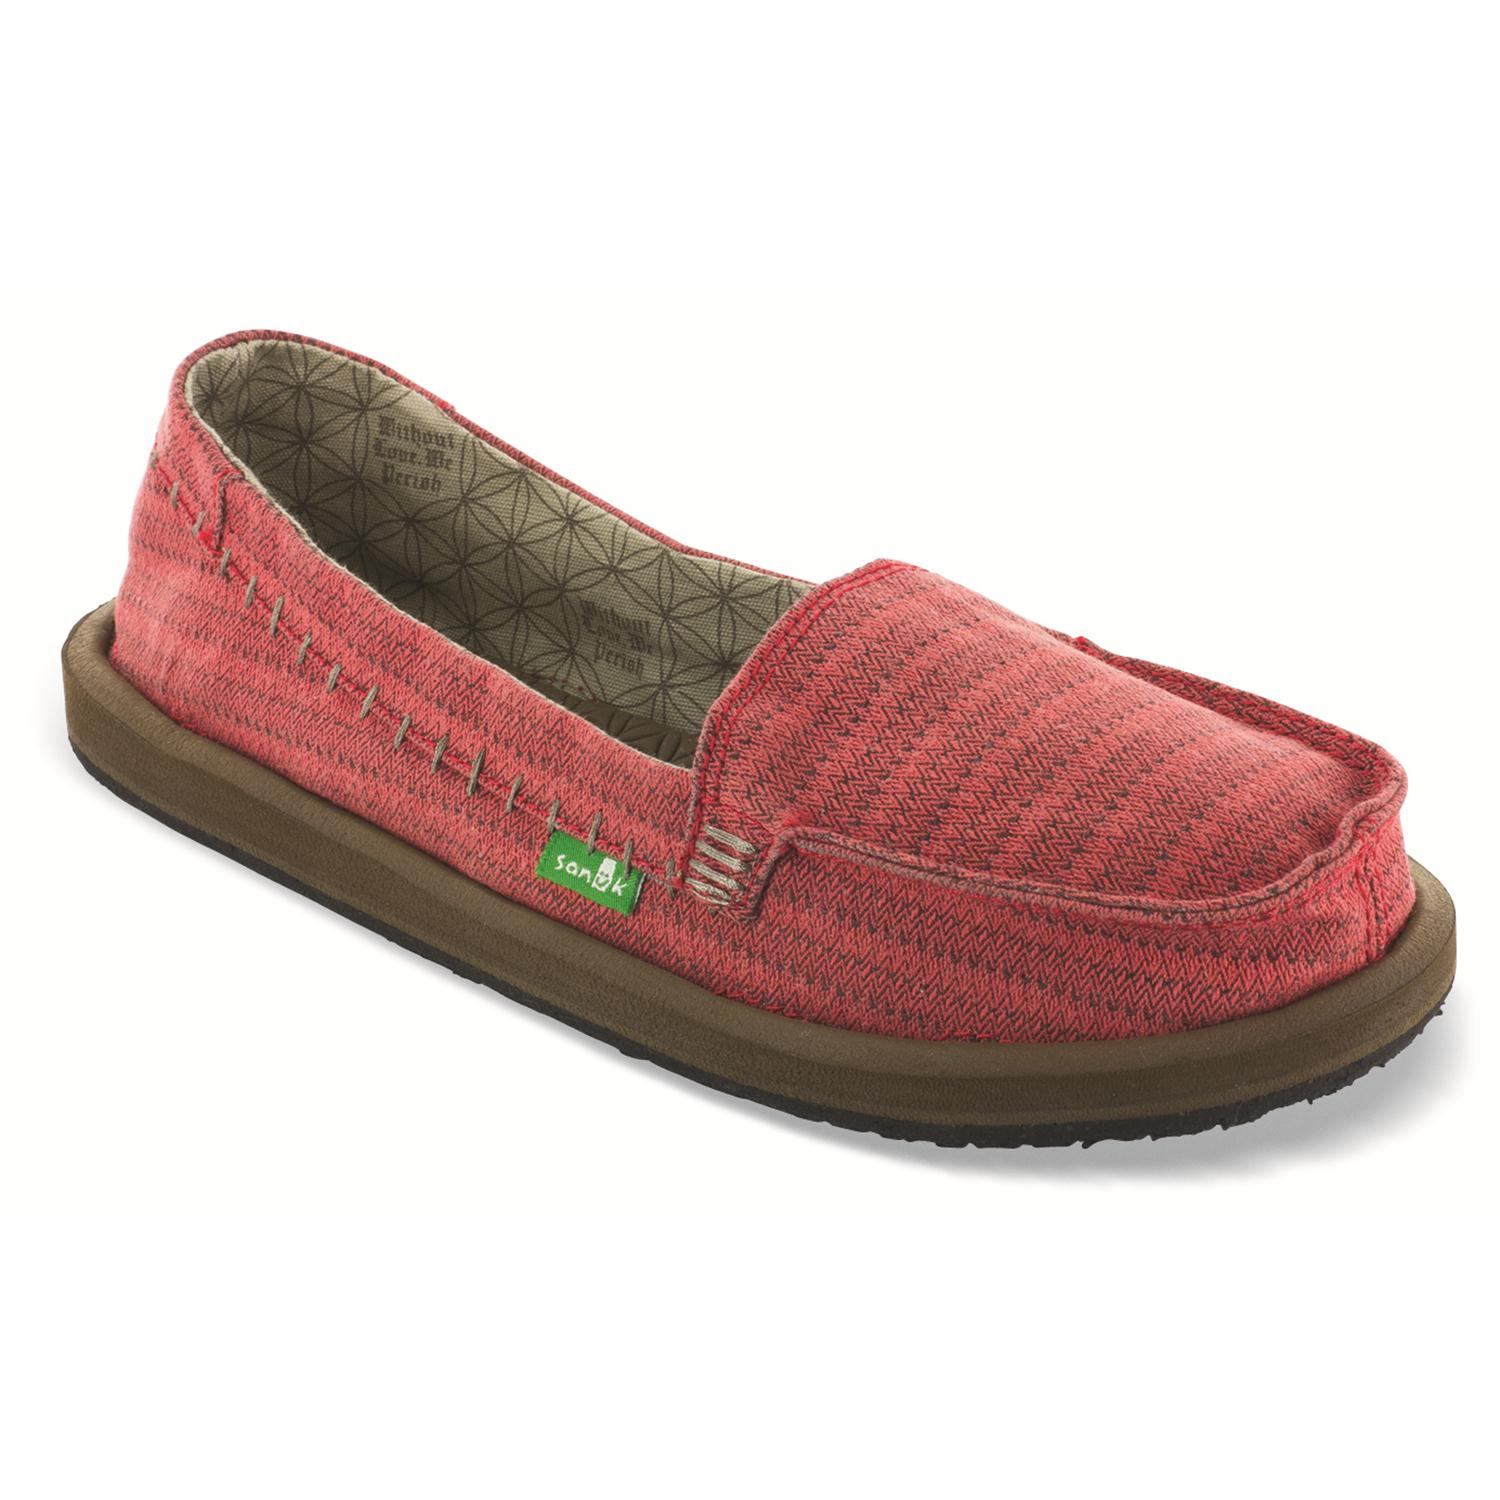 sanuk rasta brisbane shoes s evo outlet